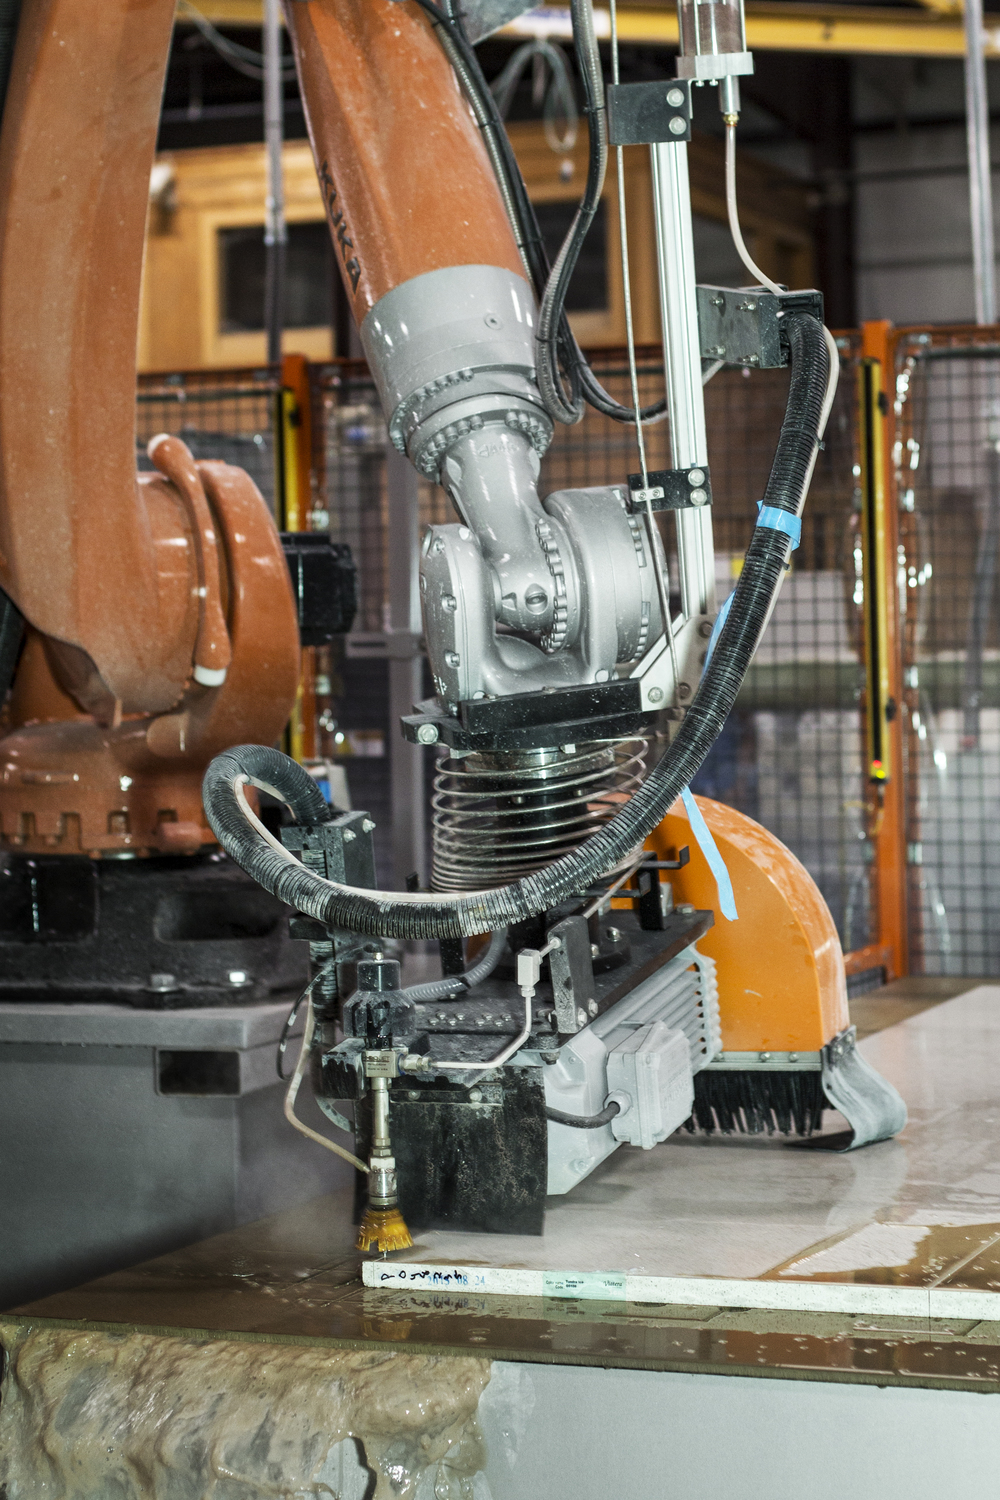 Robo SawJet Stone Cutting Equipment at Seven Stone Surface Fabricator, Atlanta, GA